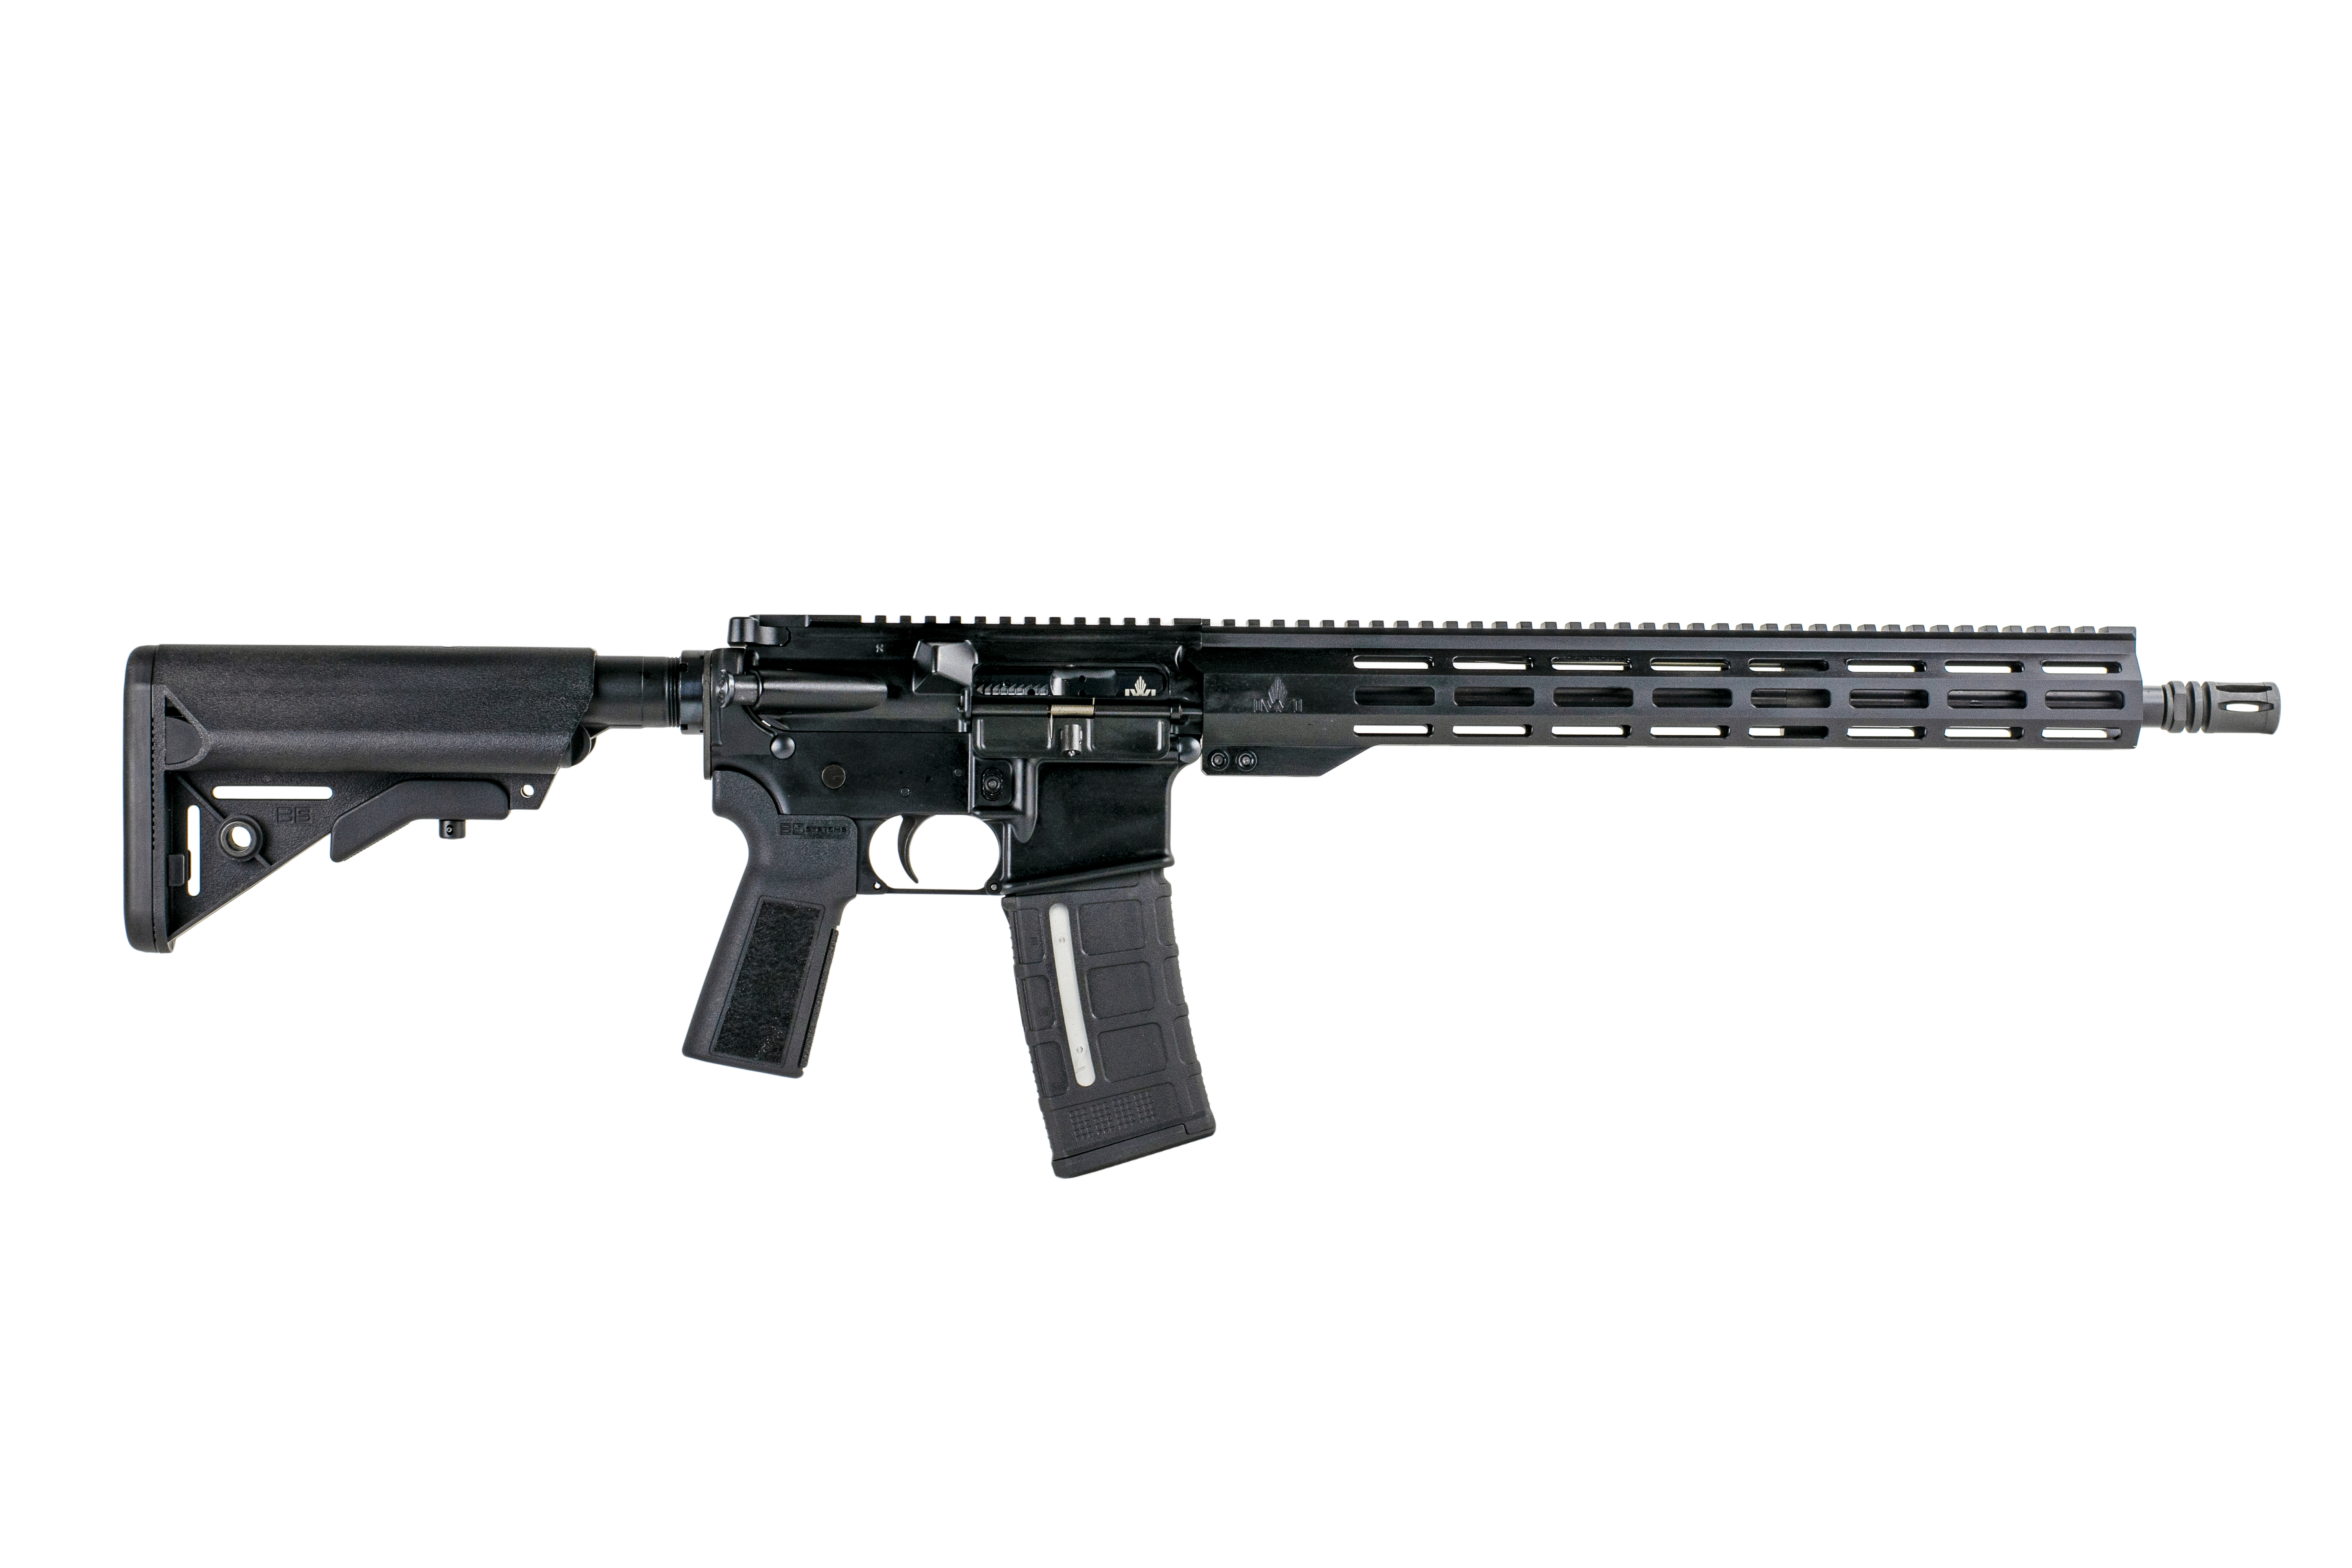 IWI - Israel Weapon Industries Z-15 223 REM   5.56 NATO